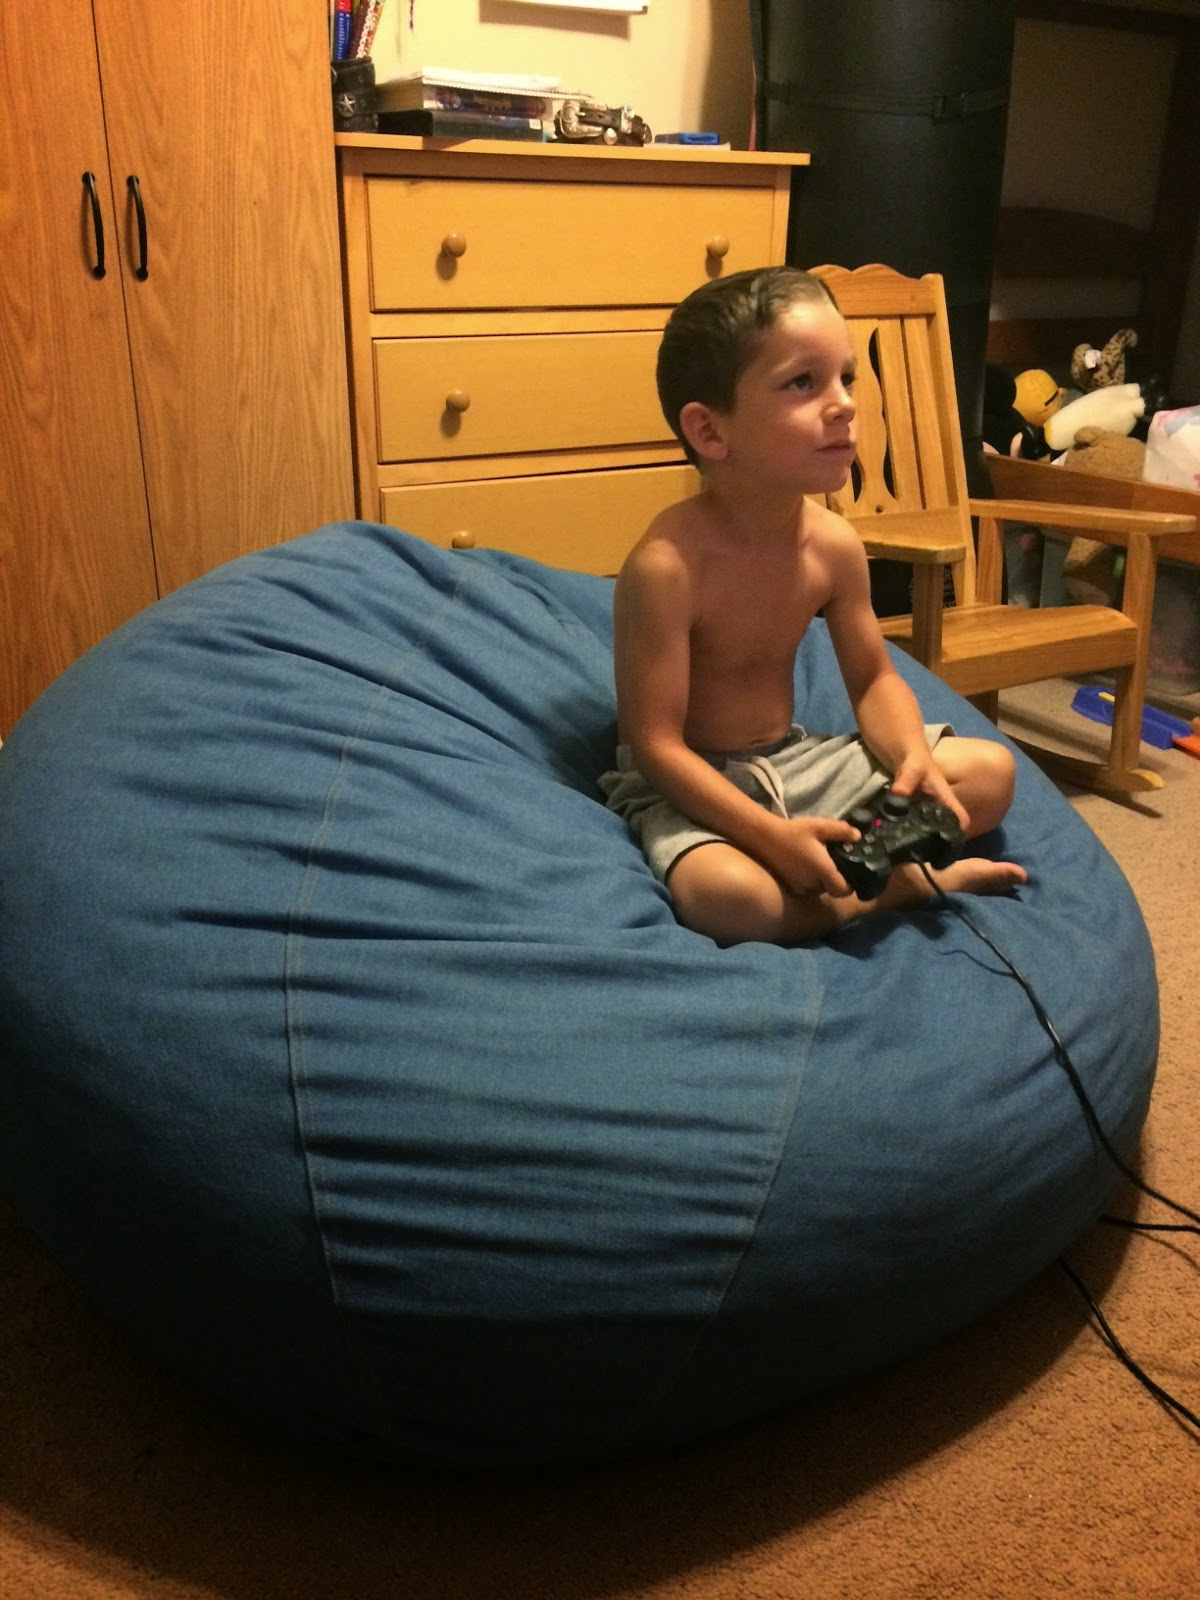 big bean bag chair canada restaurant style high always blabbing: the outlet review and giveaway